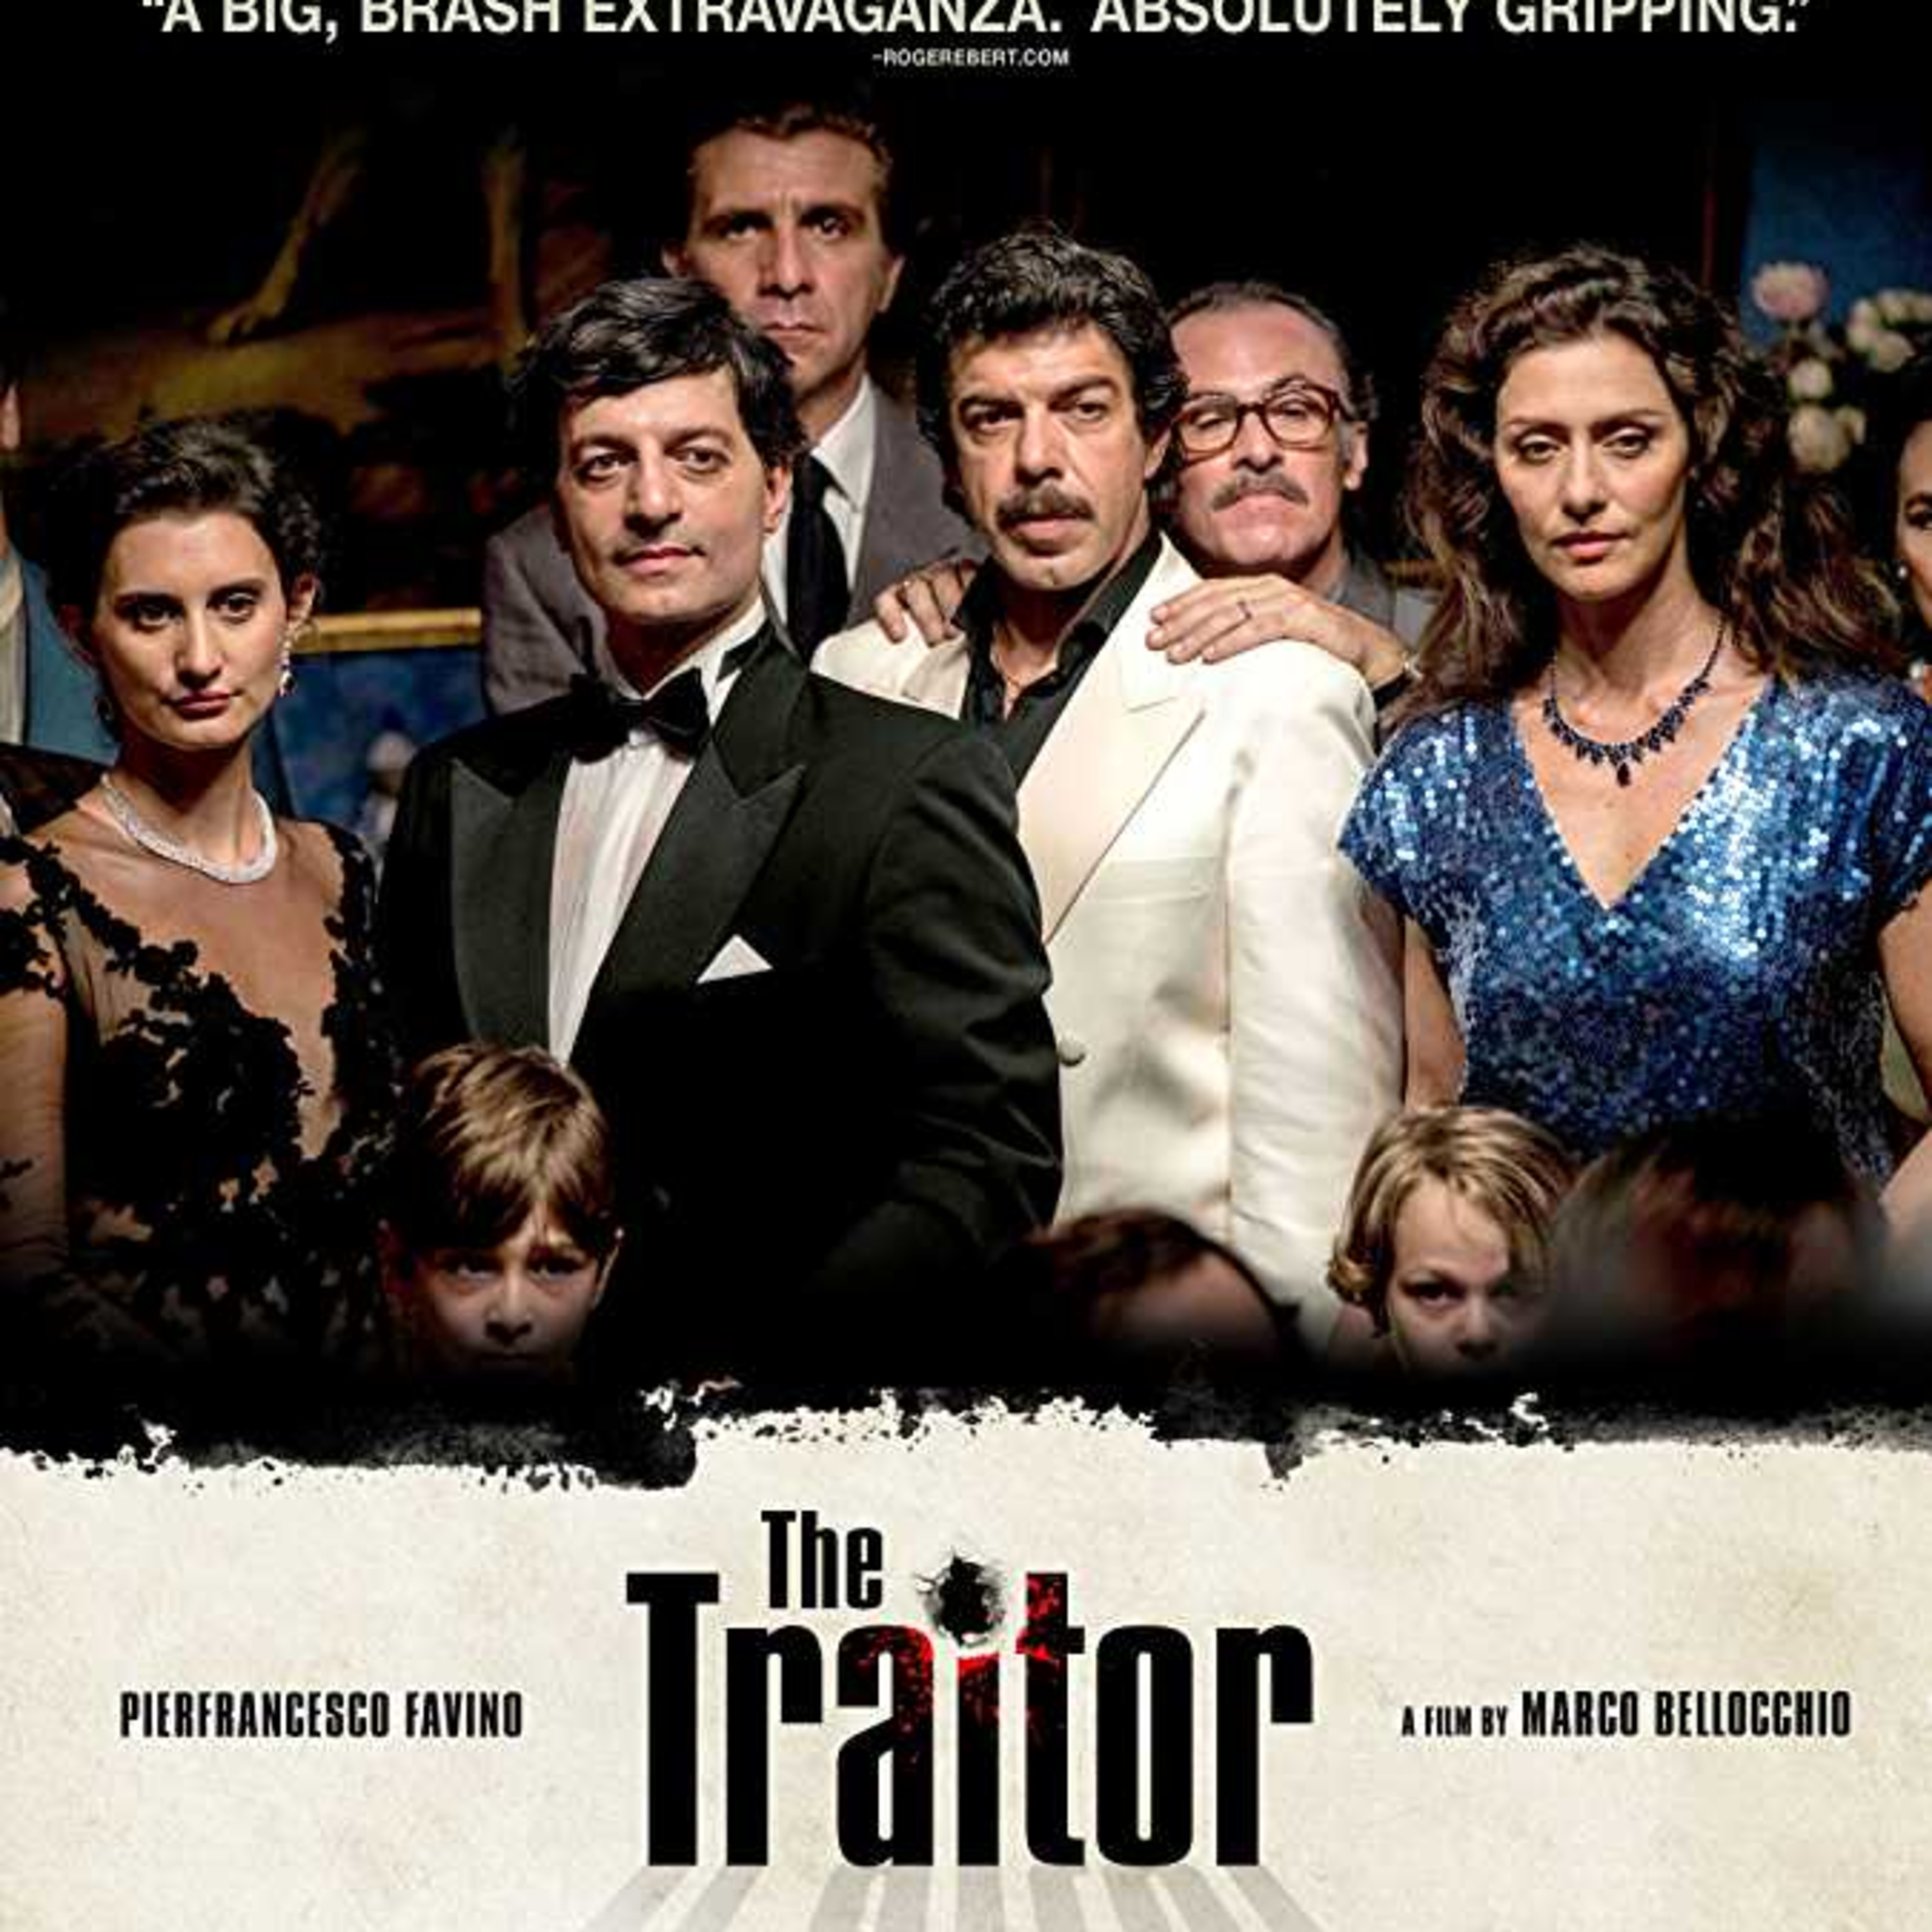 Mira The Traitor 2019 pelicula gratis completas streaming en hd